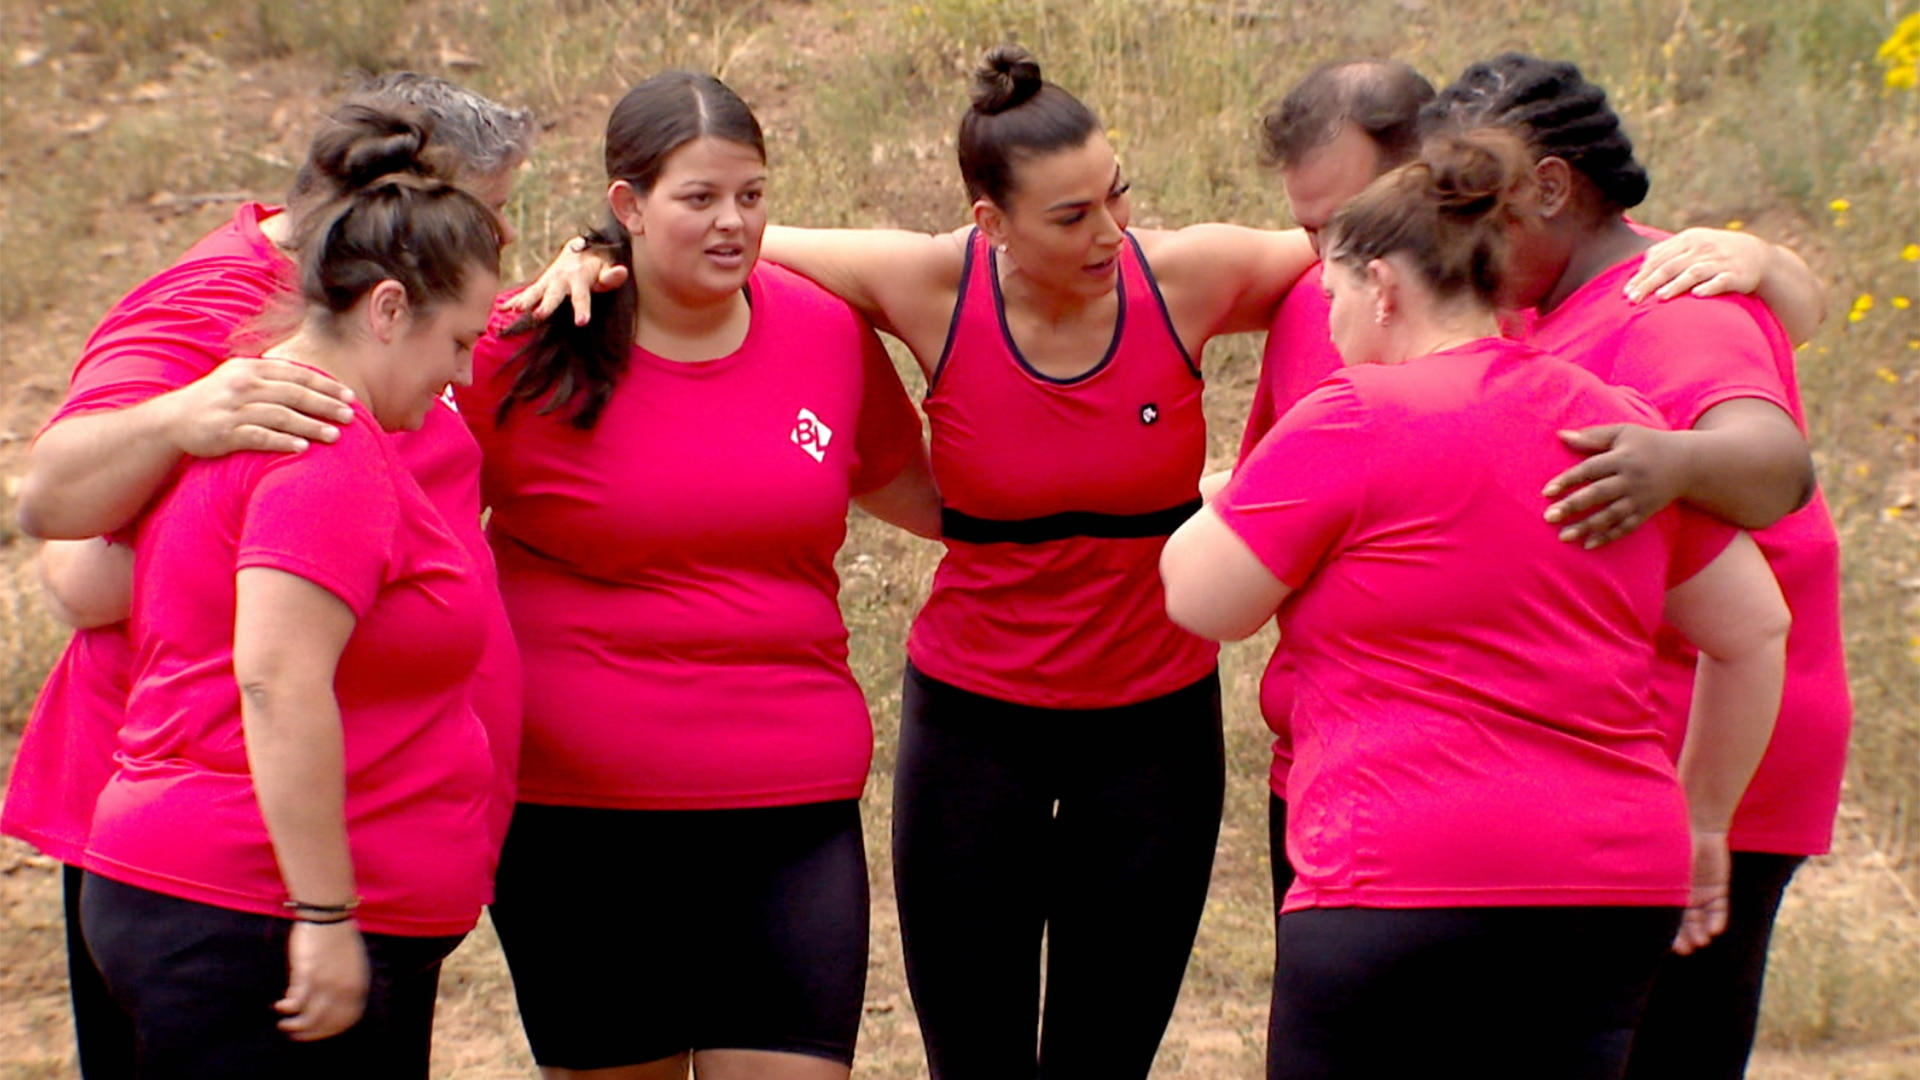 Watch The Biggest Loser Highlight: The Biggest Loser